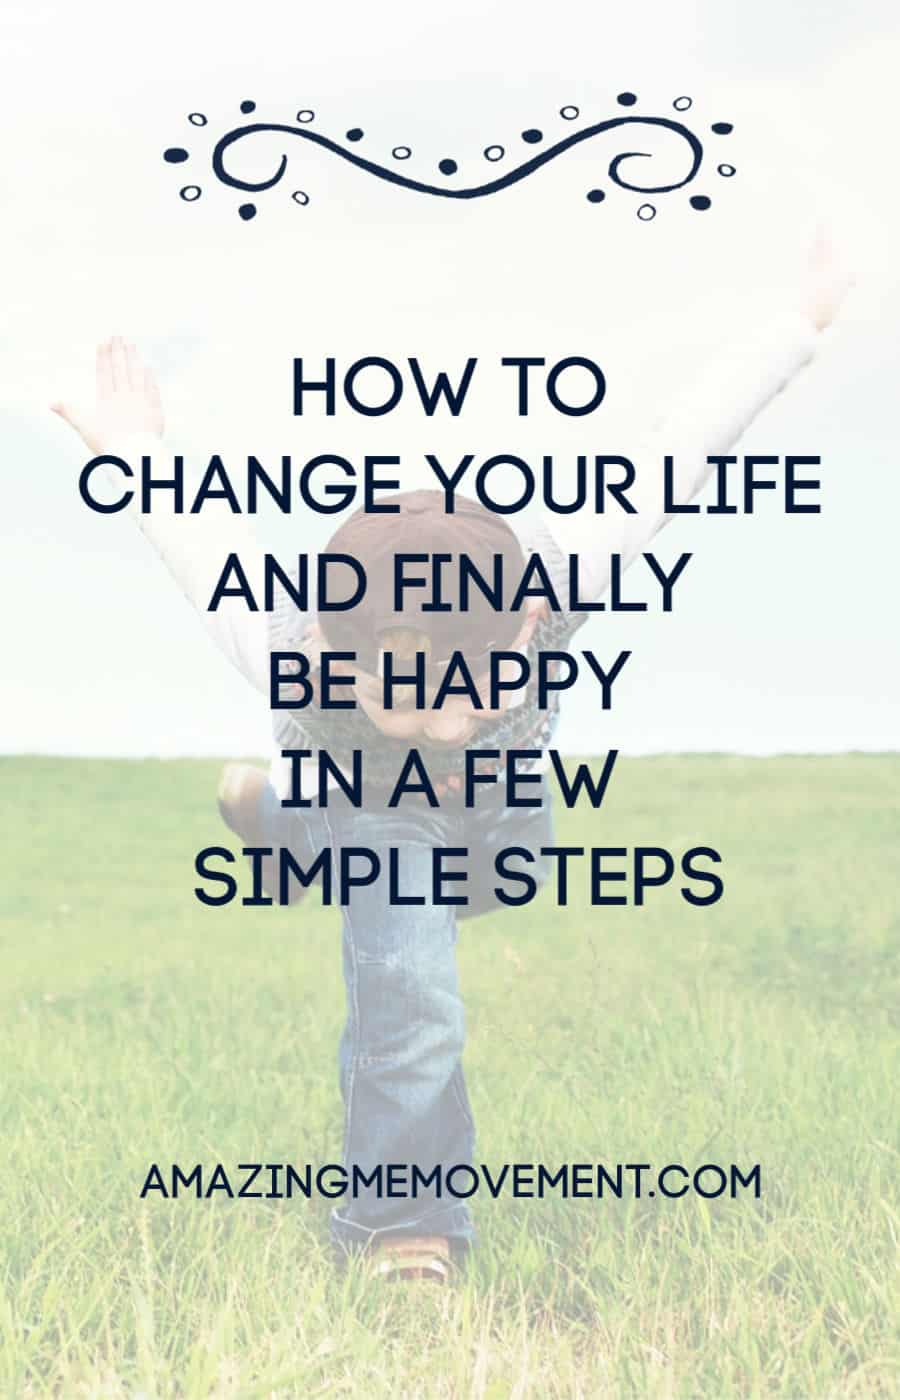 How to change your life in a few simple steps